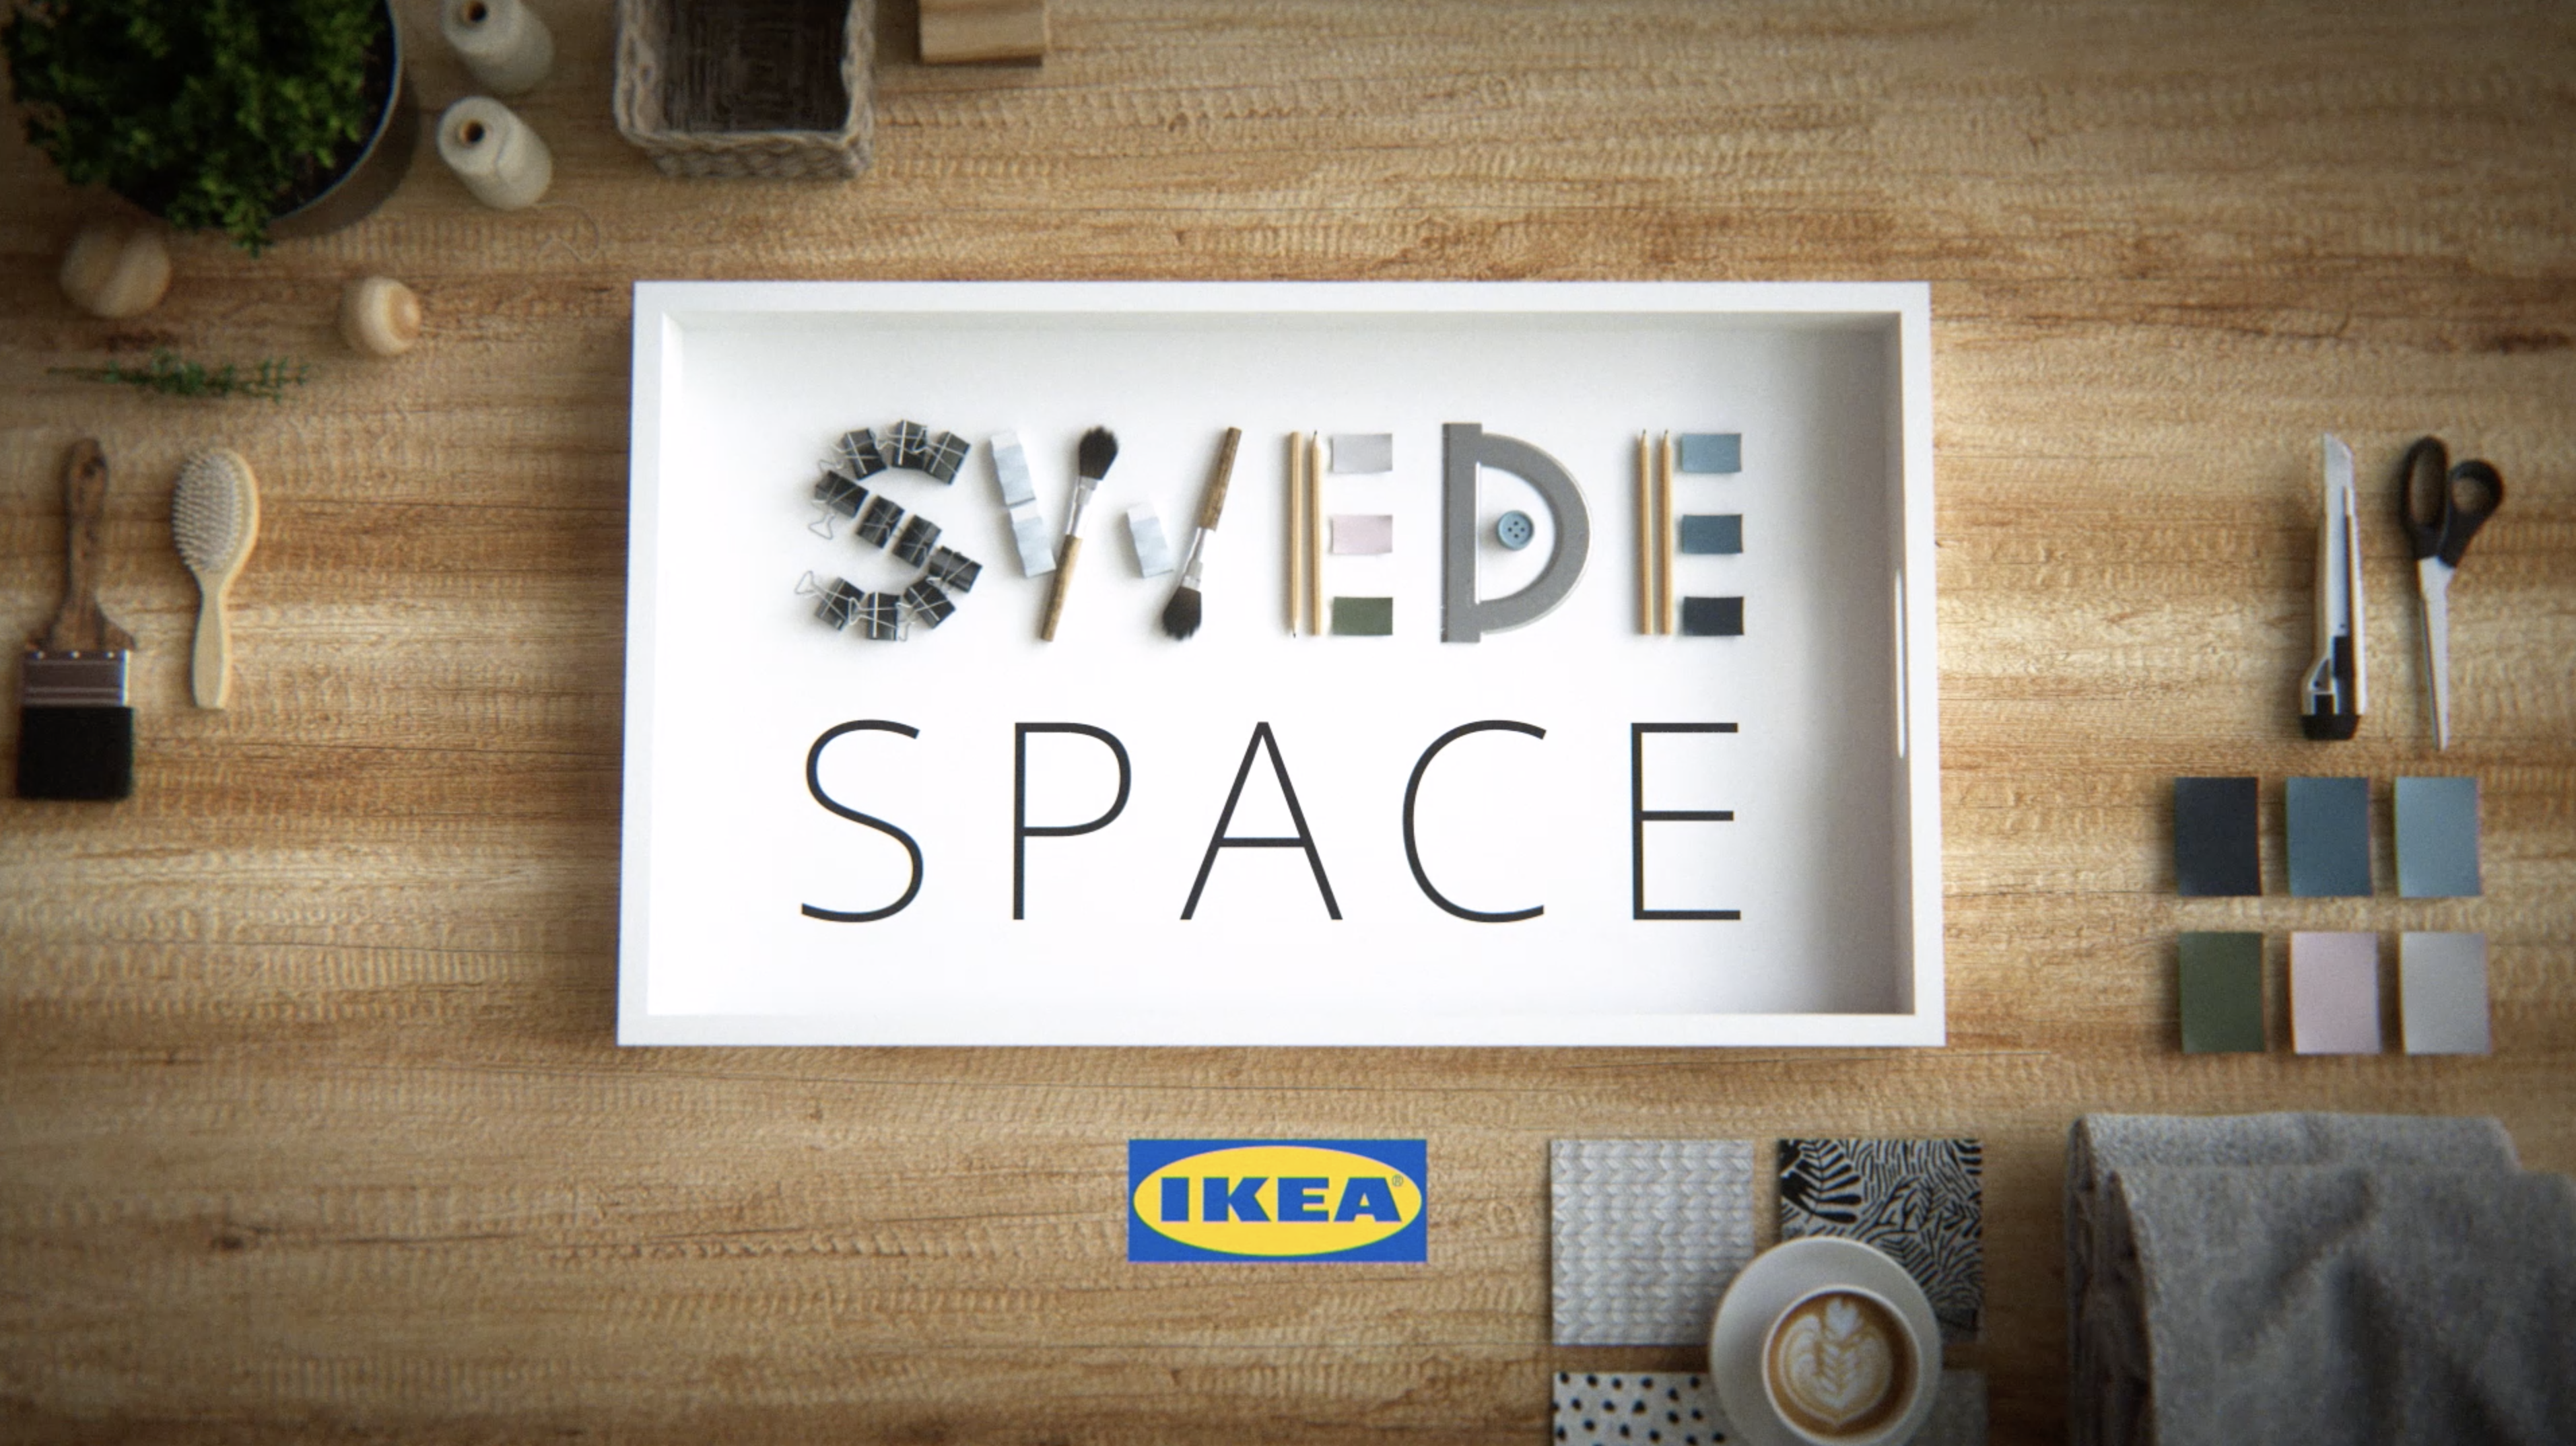 Swede Space